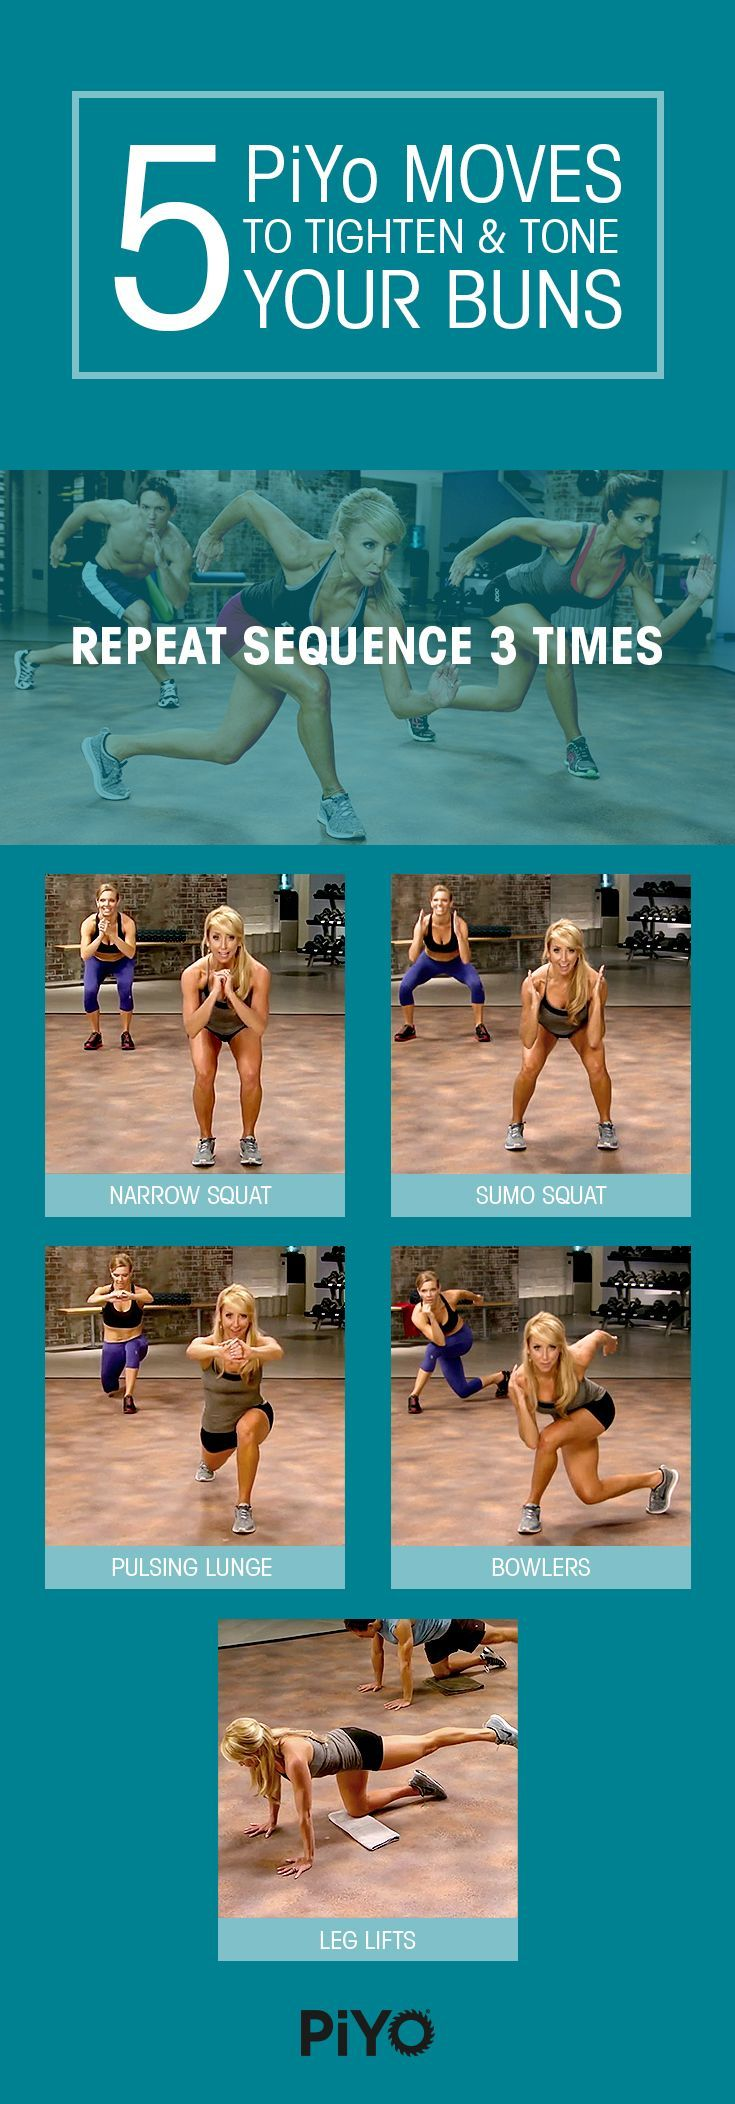 Tighten and tone your booty with these 5 moves from PiYo! They incorporate the best of Pilates and Yoga to help sculpt and strengthen your butt into everything you've ever wanted. Click through to learn how to do the moves properly! // fitness // workout // exercise // butt workouts // booty workouts // lower body workouts // piyo // chalene johnson // mini workouts // simple moves // beginner // Beachbody // BeachbodyBlog.com